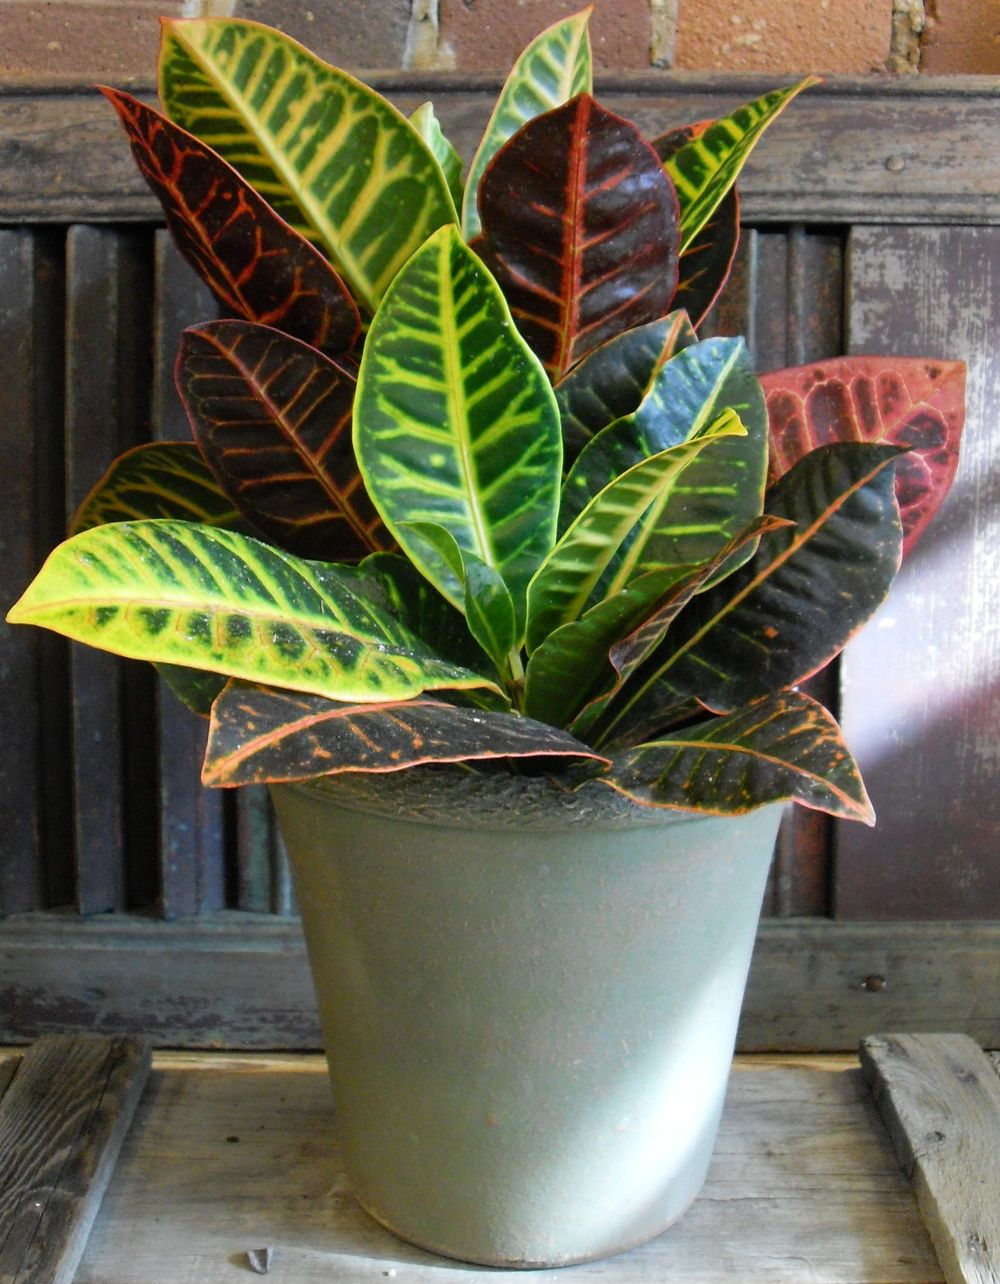 Superior Caring For Tropical Plants Part - 6: Images Of Tropical House Plants